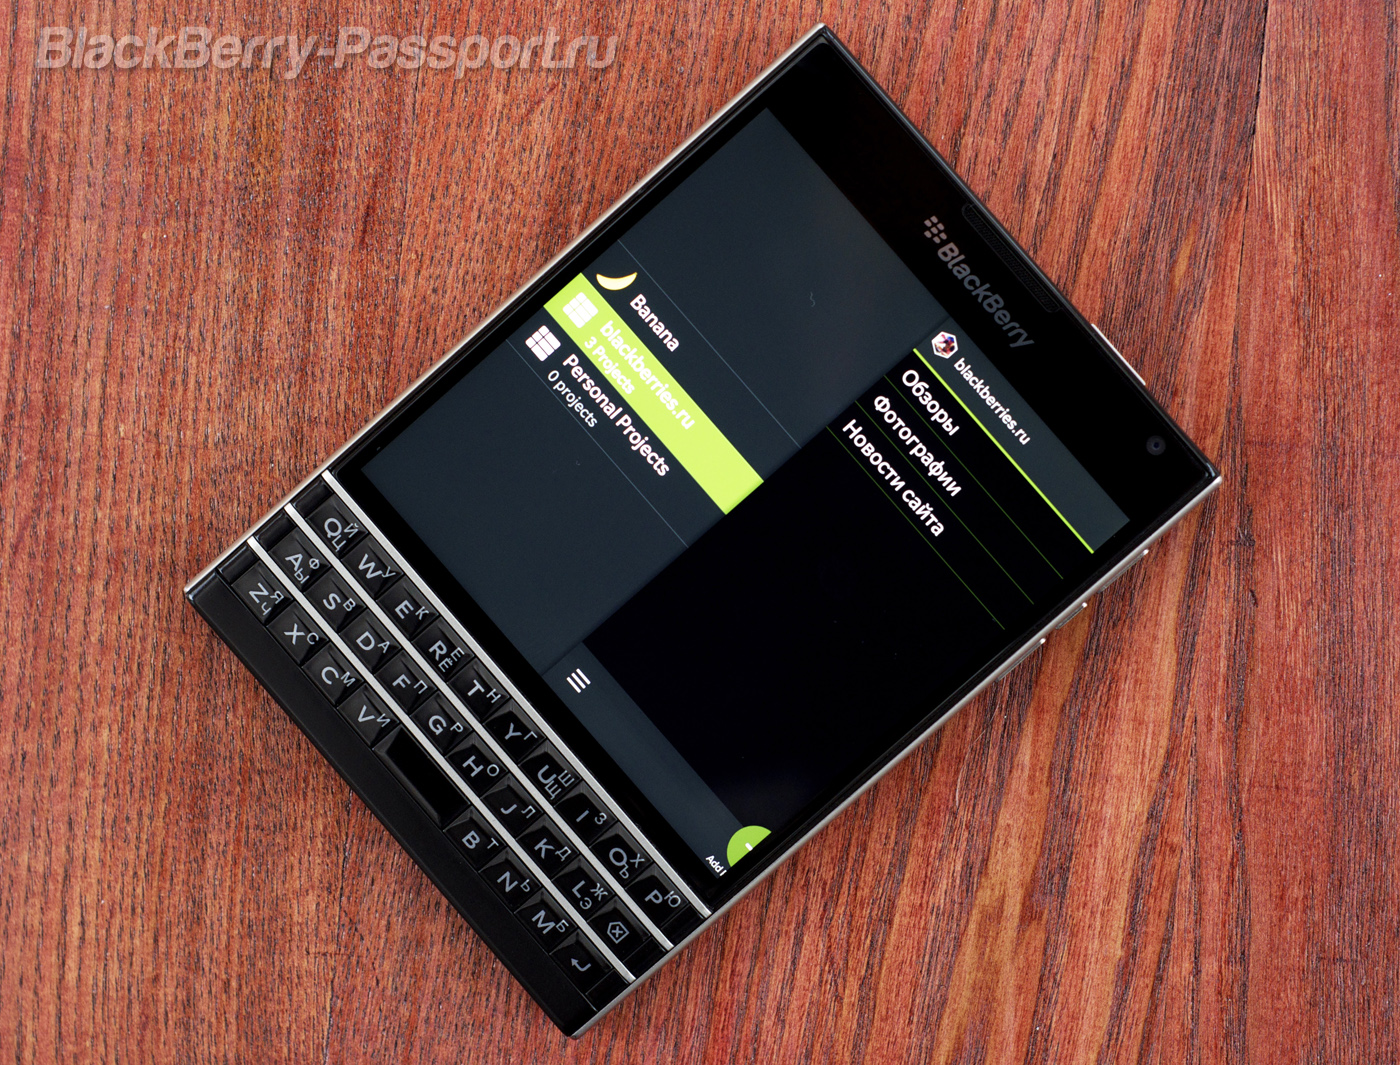 BlackBerry-Passport-Banana-BP